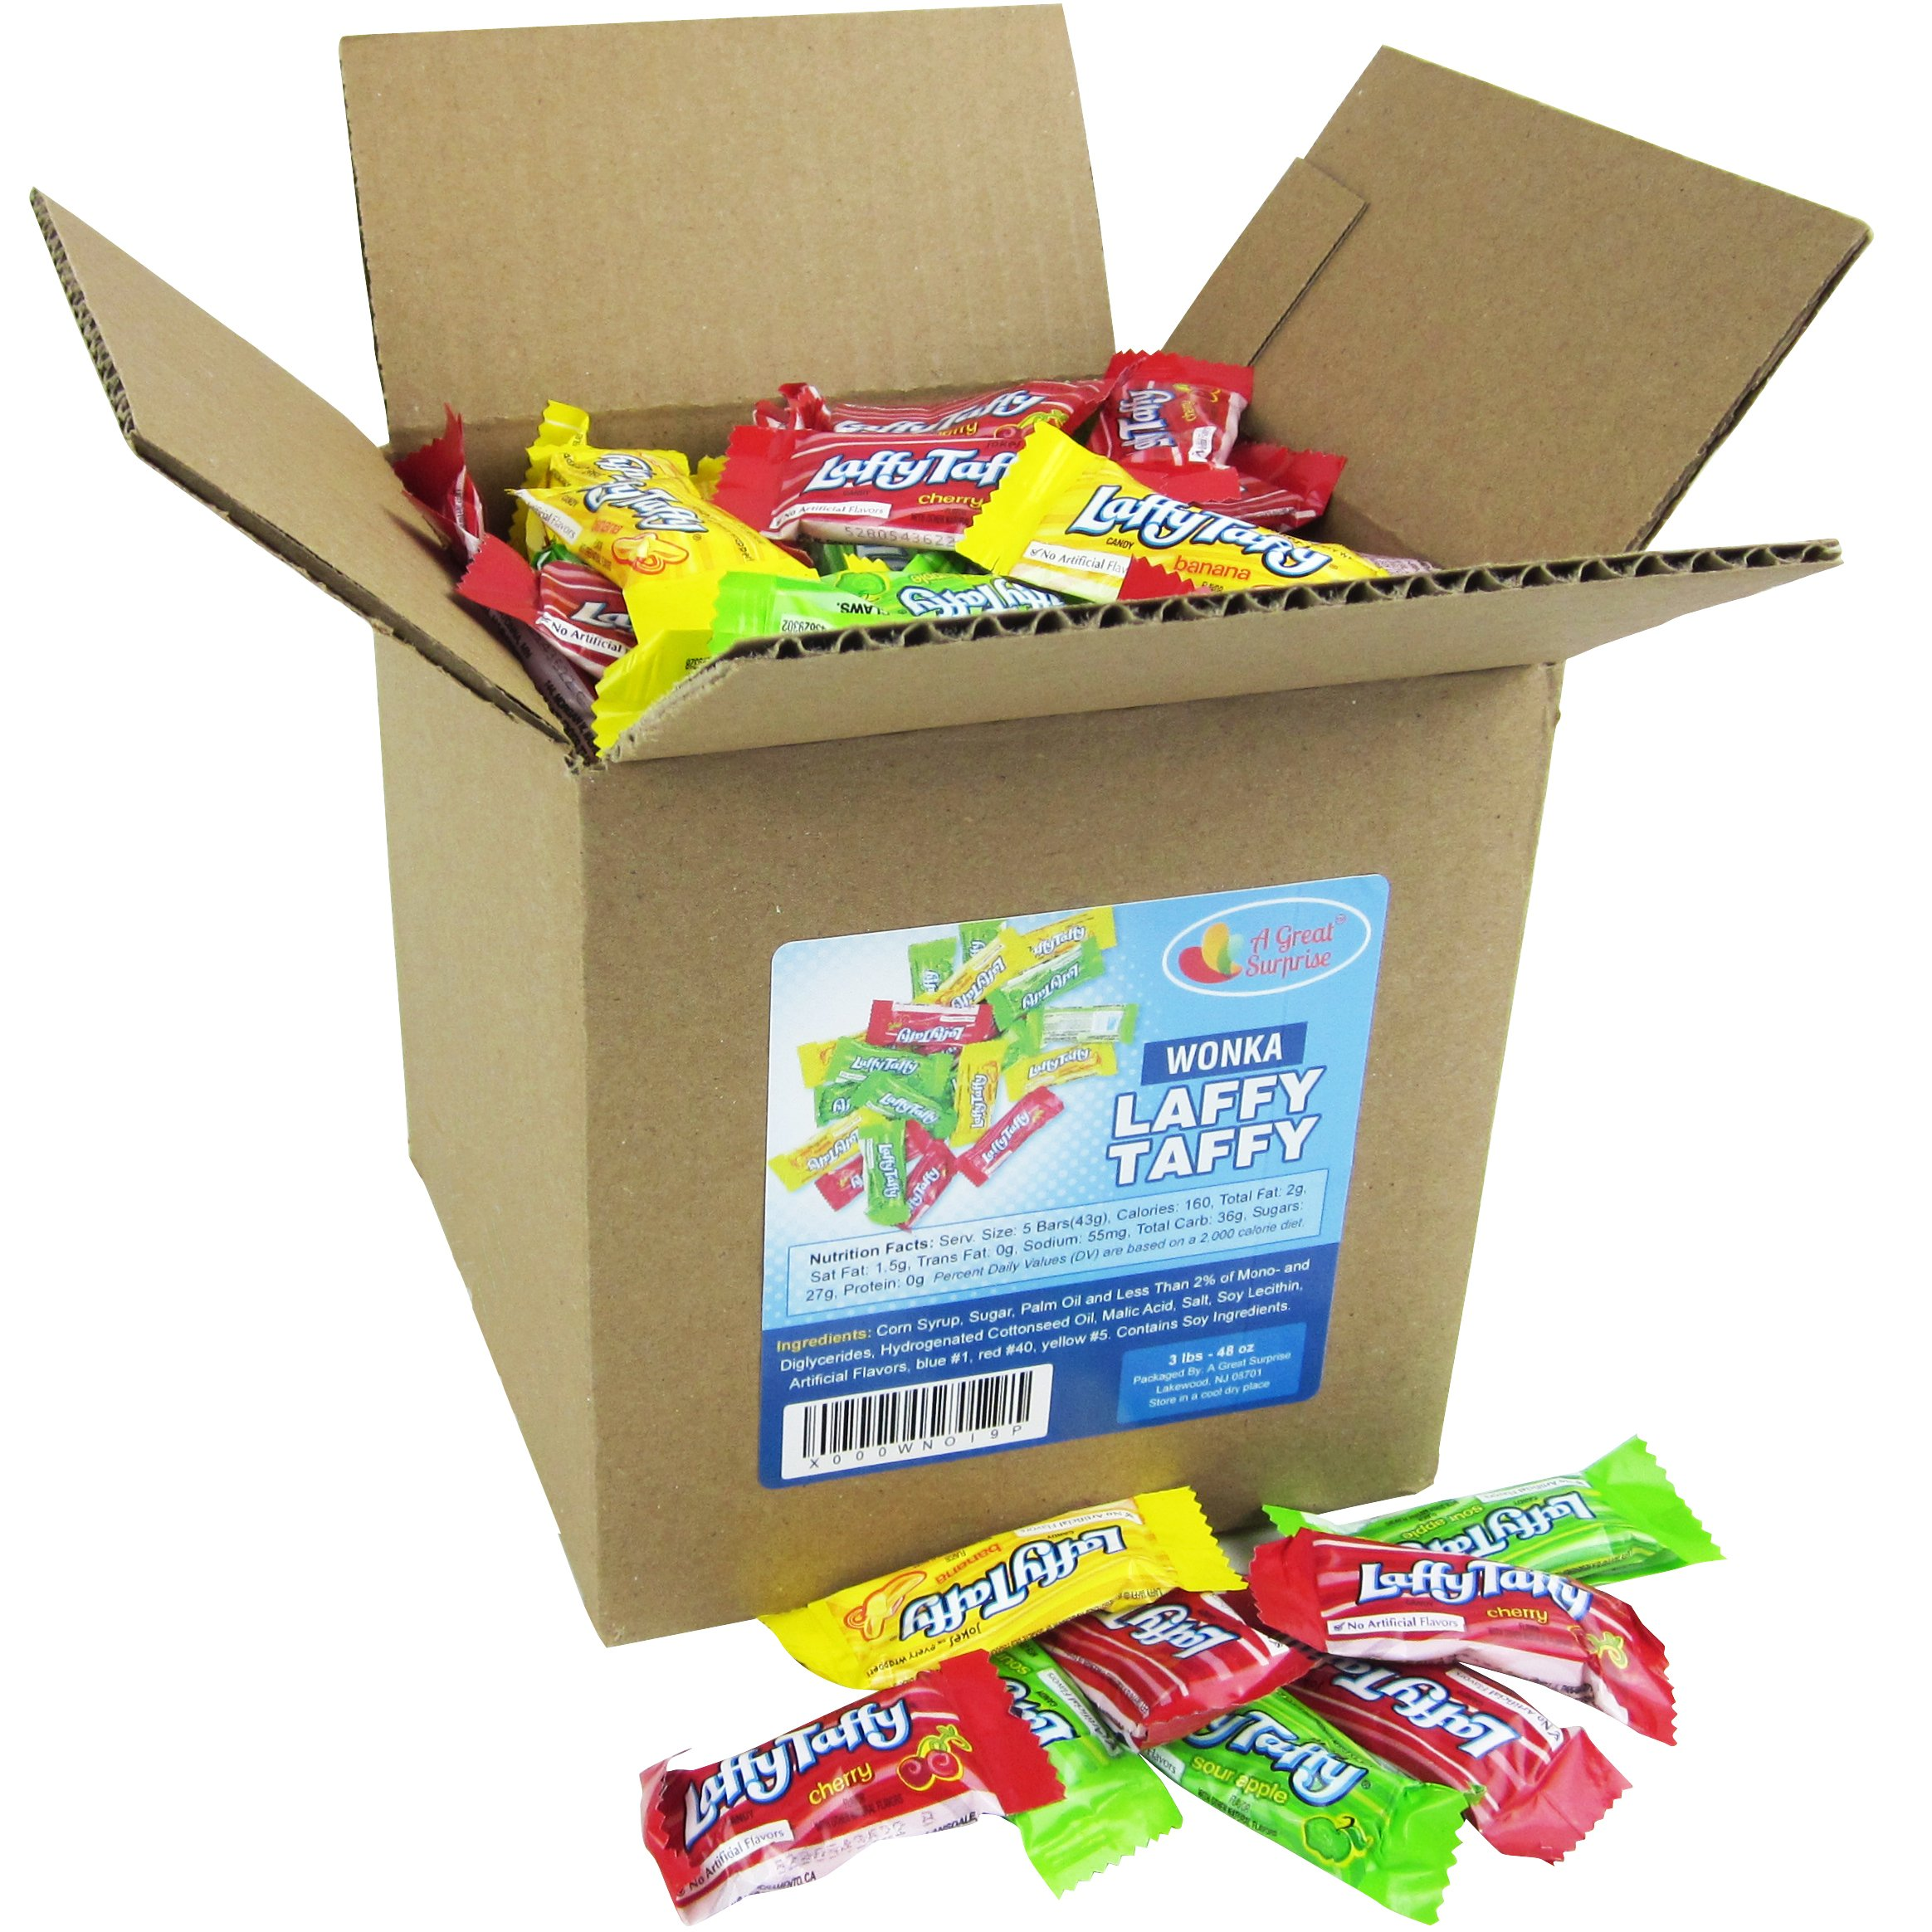 Laffy Taffy Assorted Fruit Flavors, Cherry Green Apple Banana Candy Bulk Party Box 6x6x6 Family Size by A Great Surprise (Image #3)